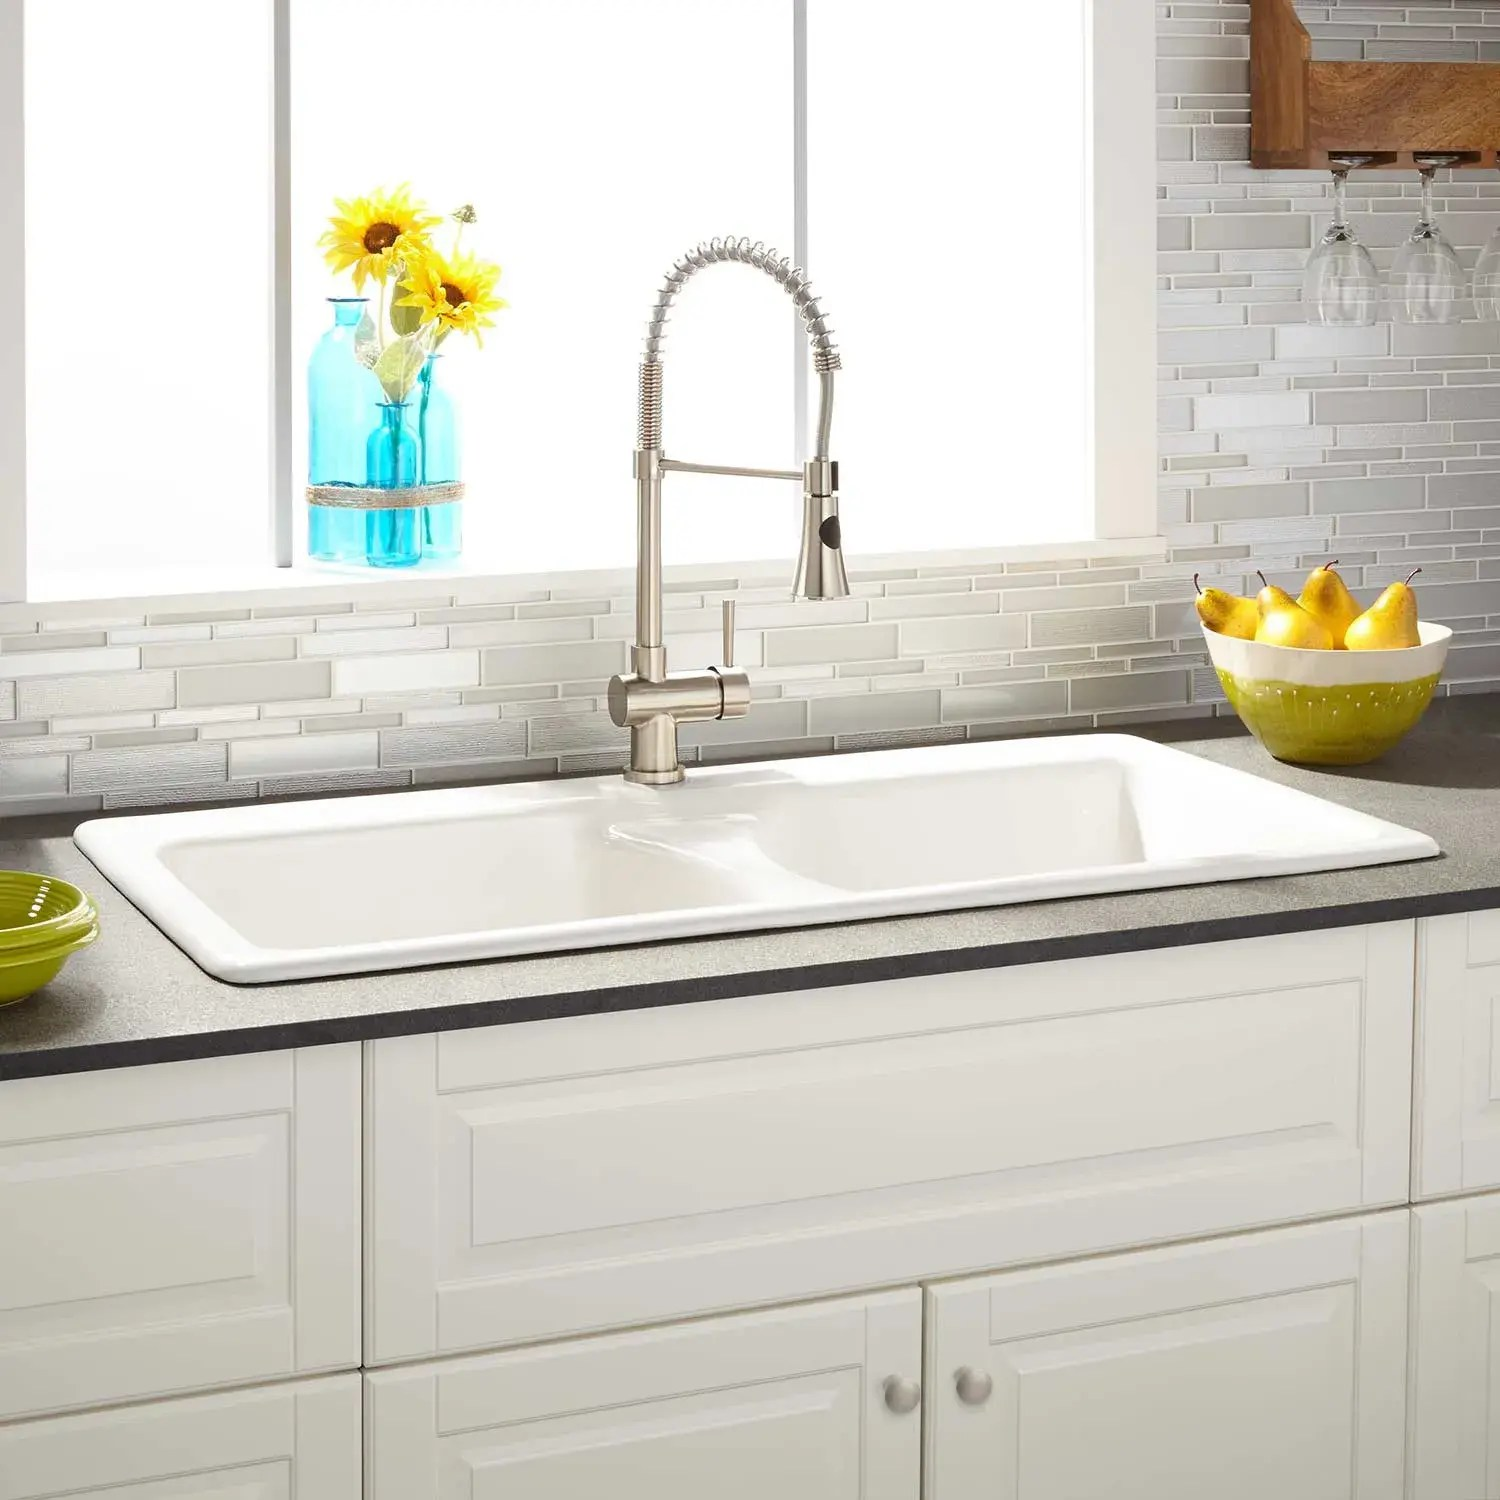 43 selkirk double bowl cast iron drop in kitchen sink white